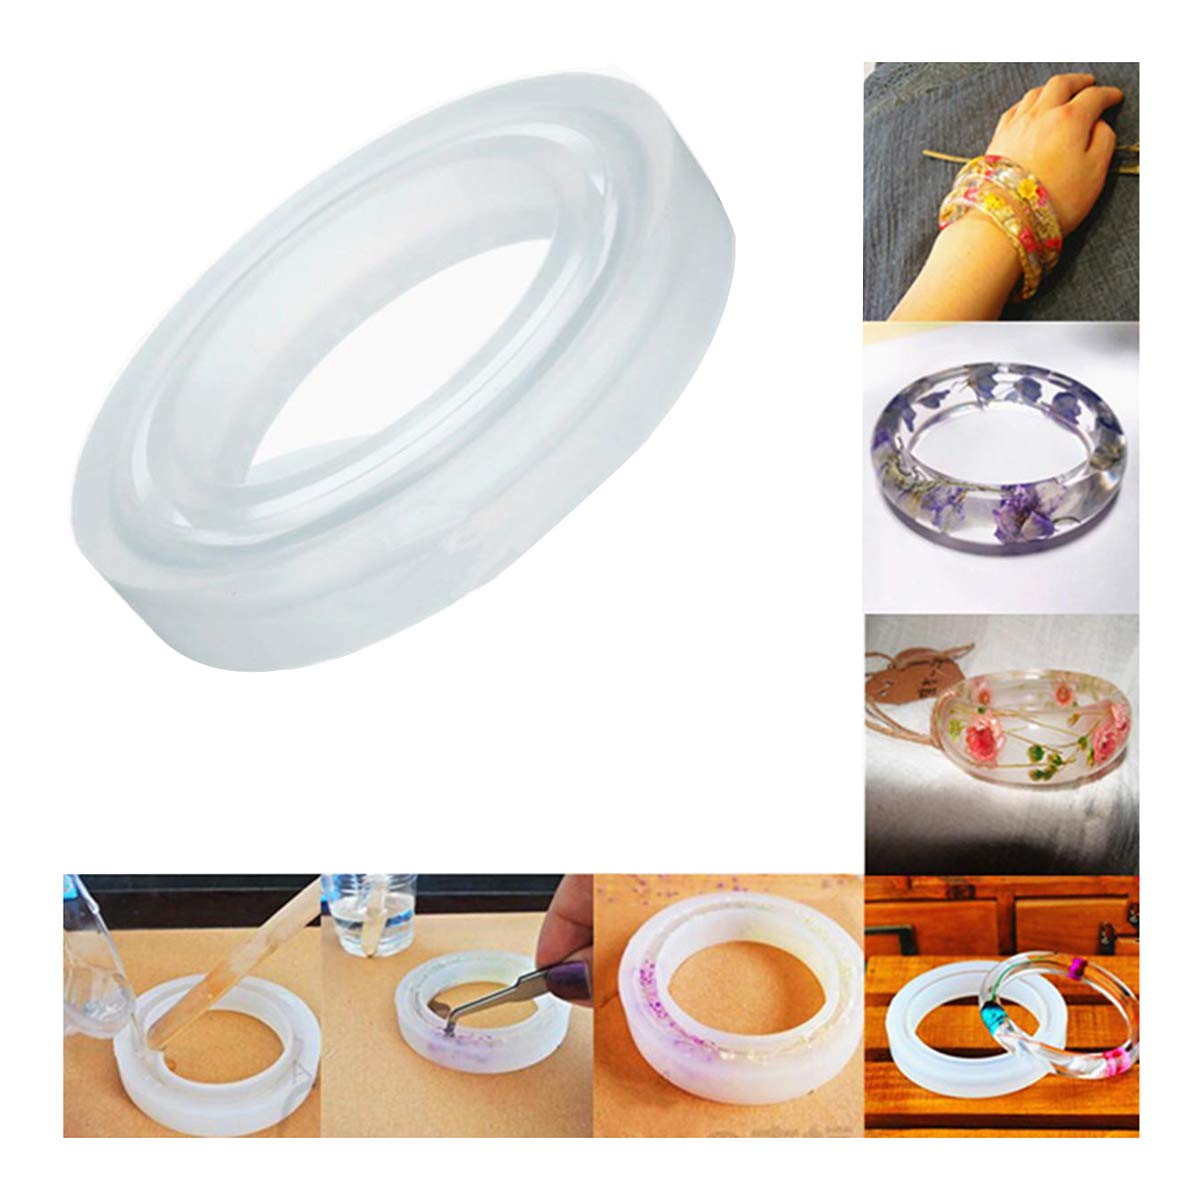 ECYC 1pcs Silicone Bracelet Casting Mould For DIY Resin Bangle Bracelet Jewelry Making Tools